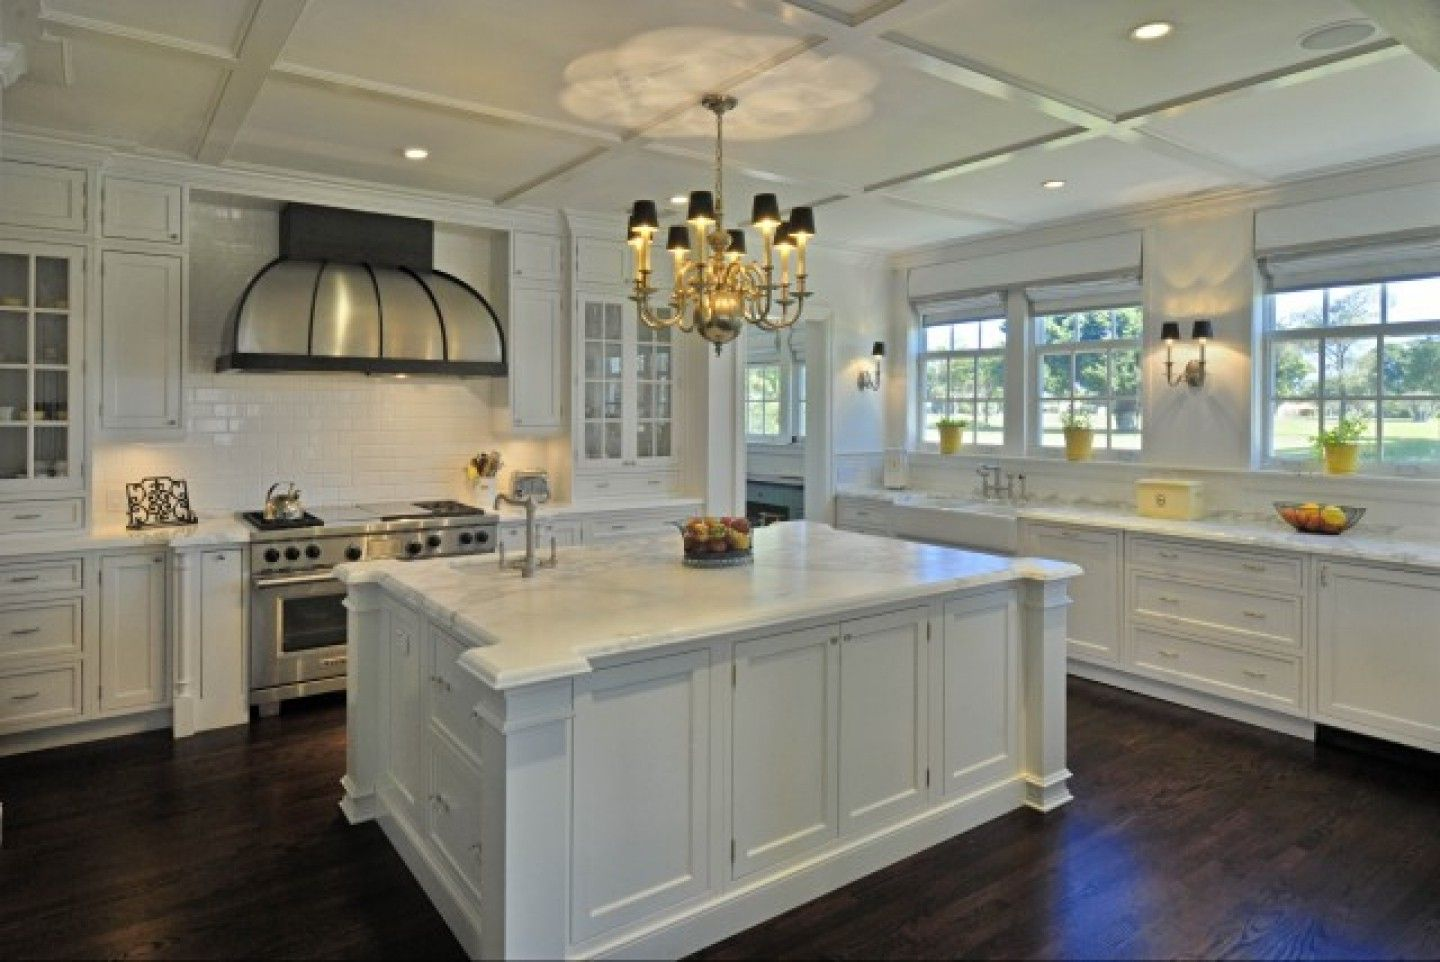 Pin By Kym Wall On Kitchen Of My Dreams Antique White Kitchen